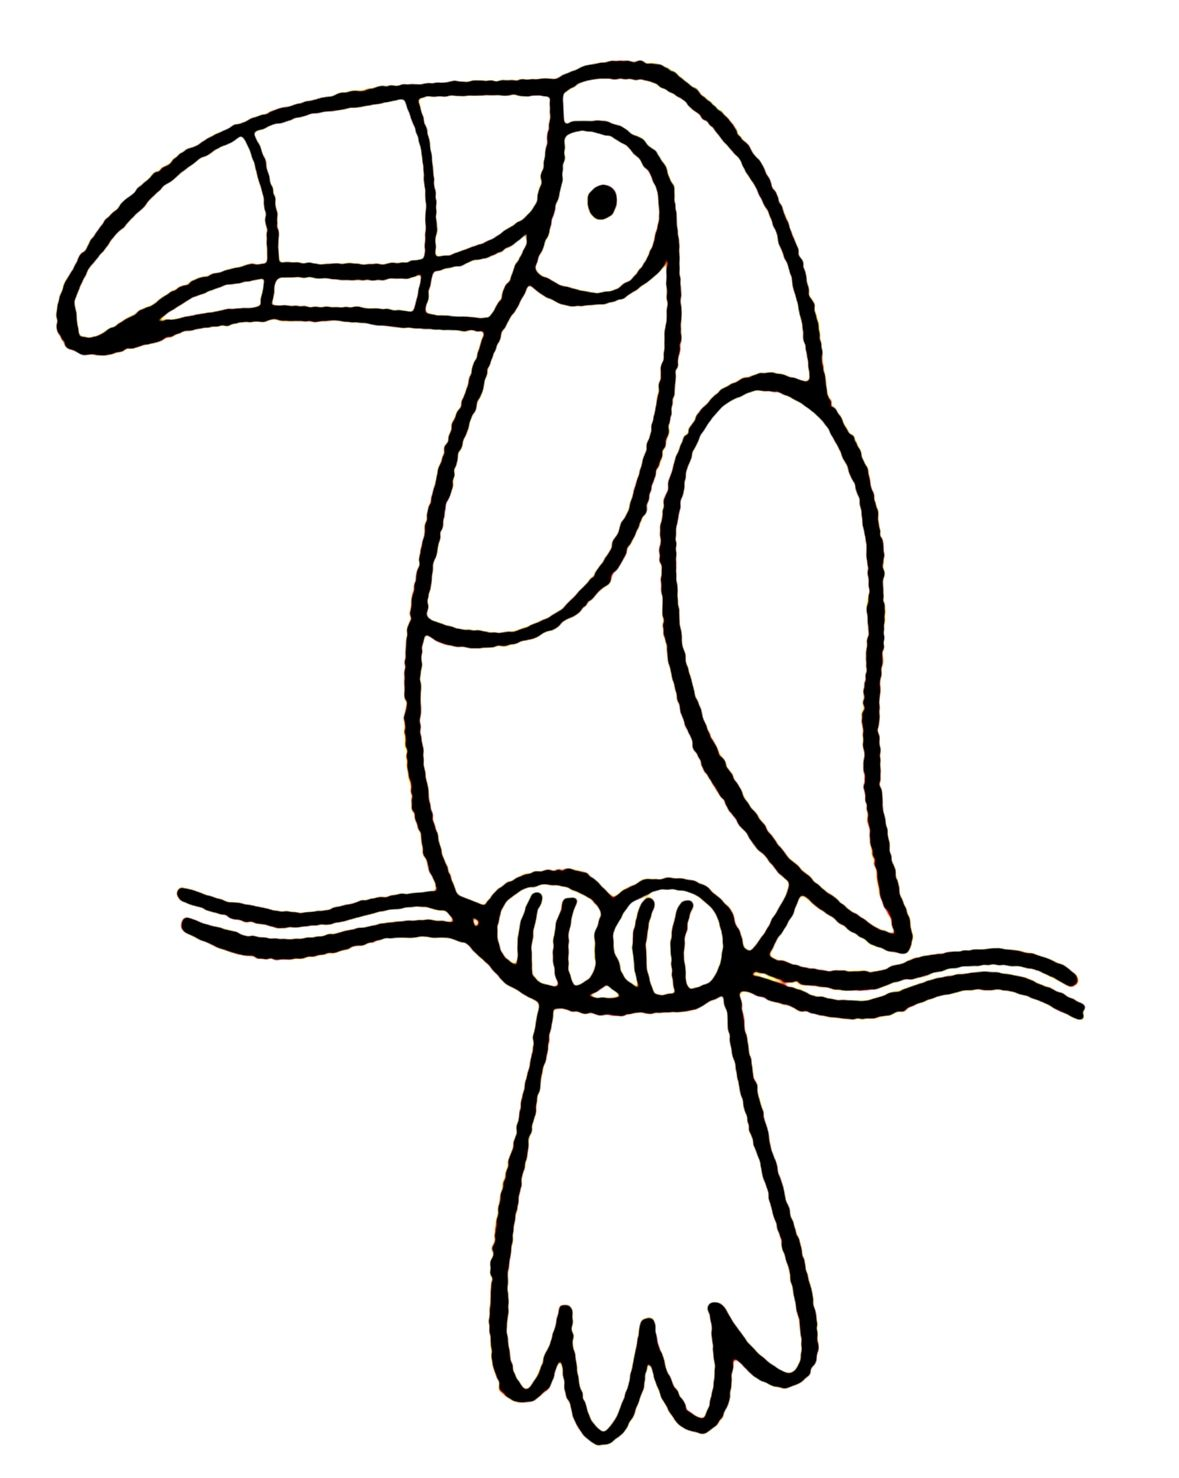 Toucan clipart black and white 4 » Clipart Station.